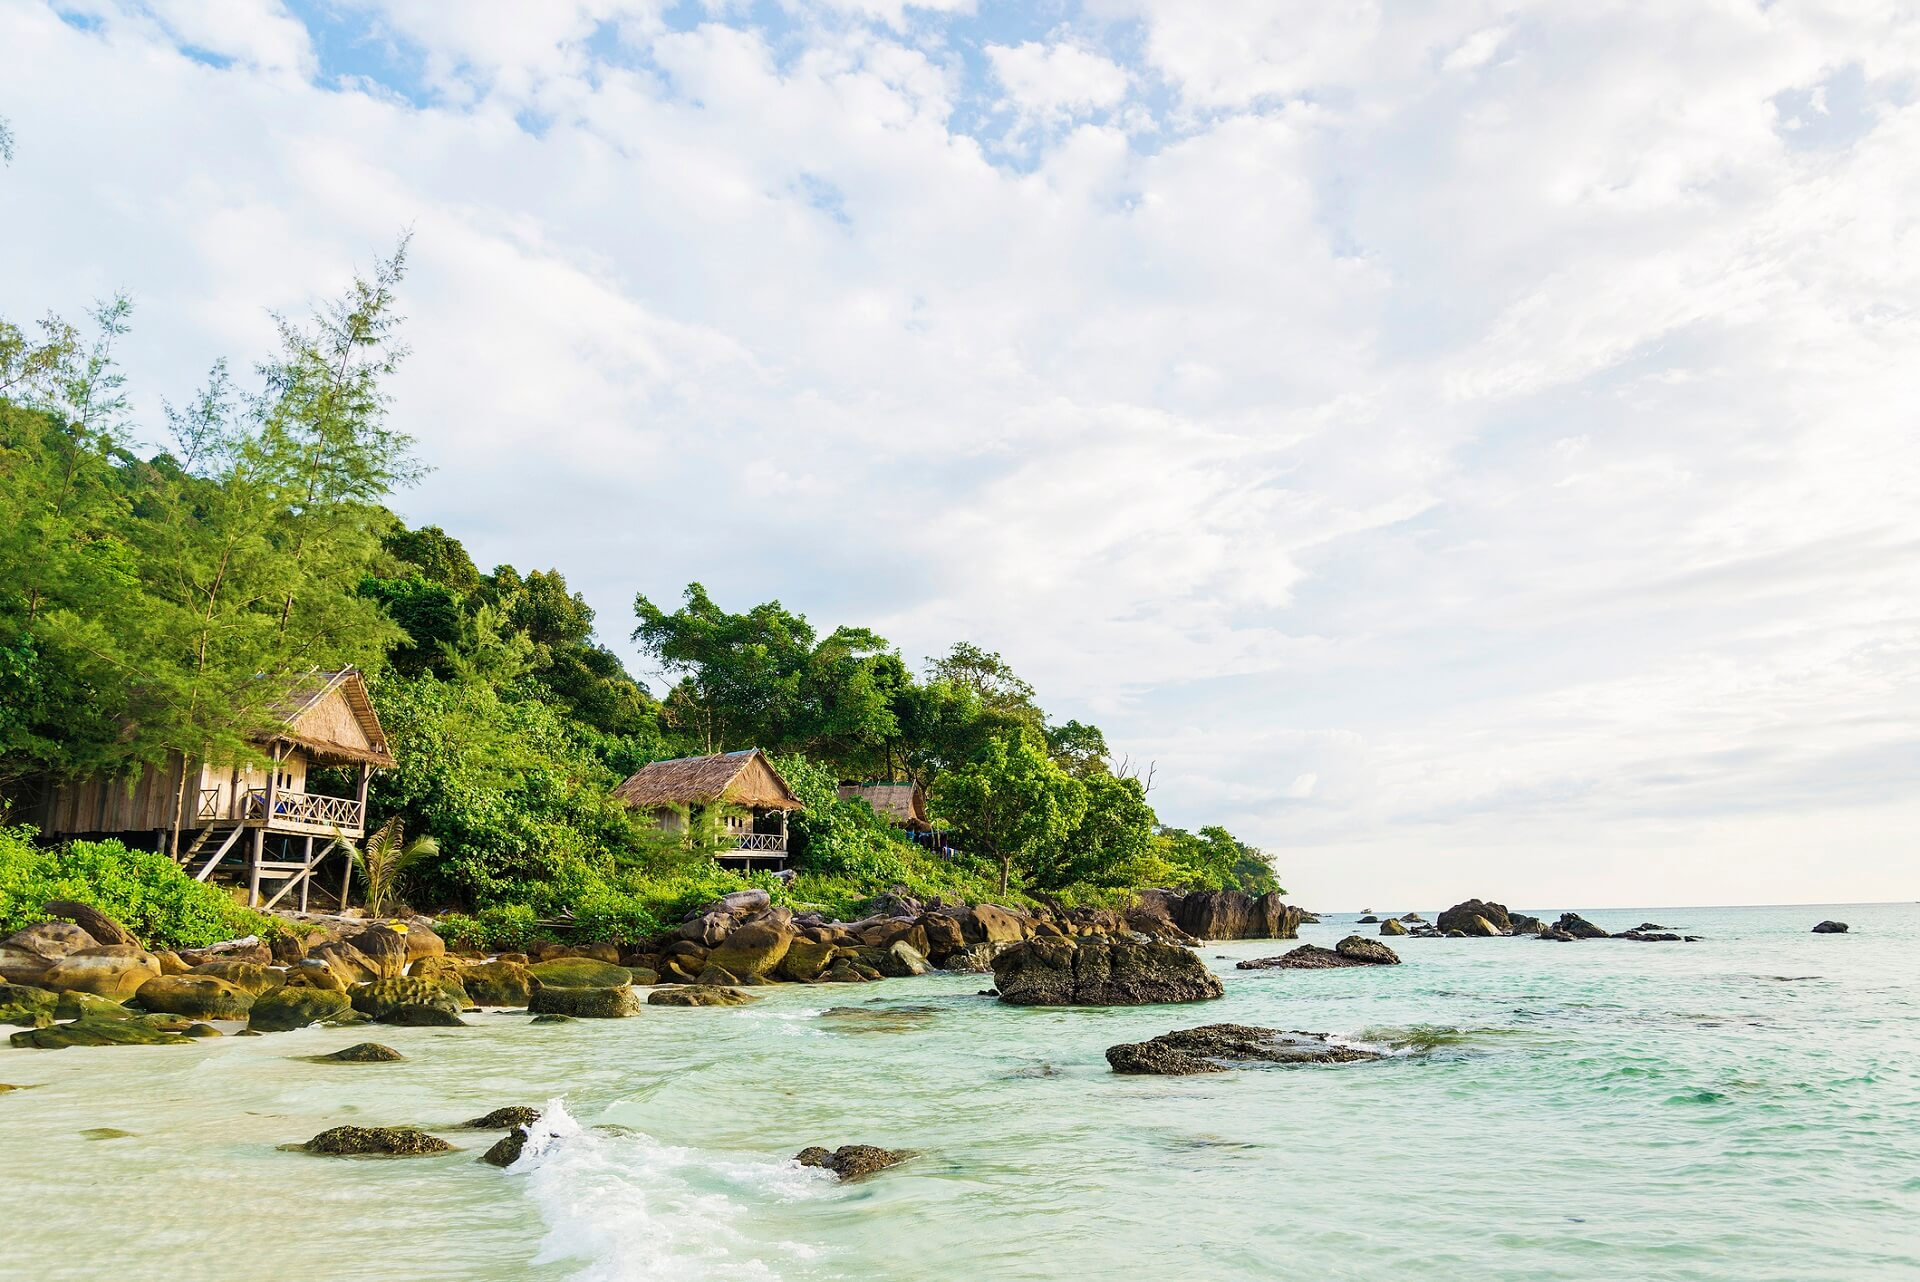 Holzbungalows am Strand von Koh Rong in Kambodscha